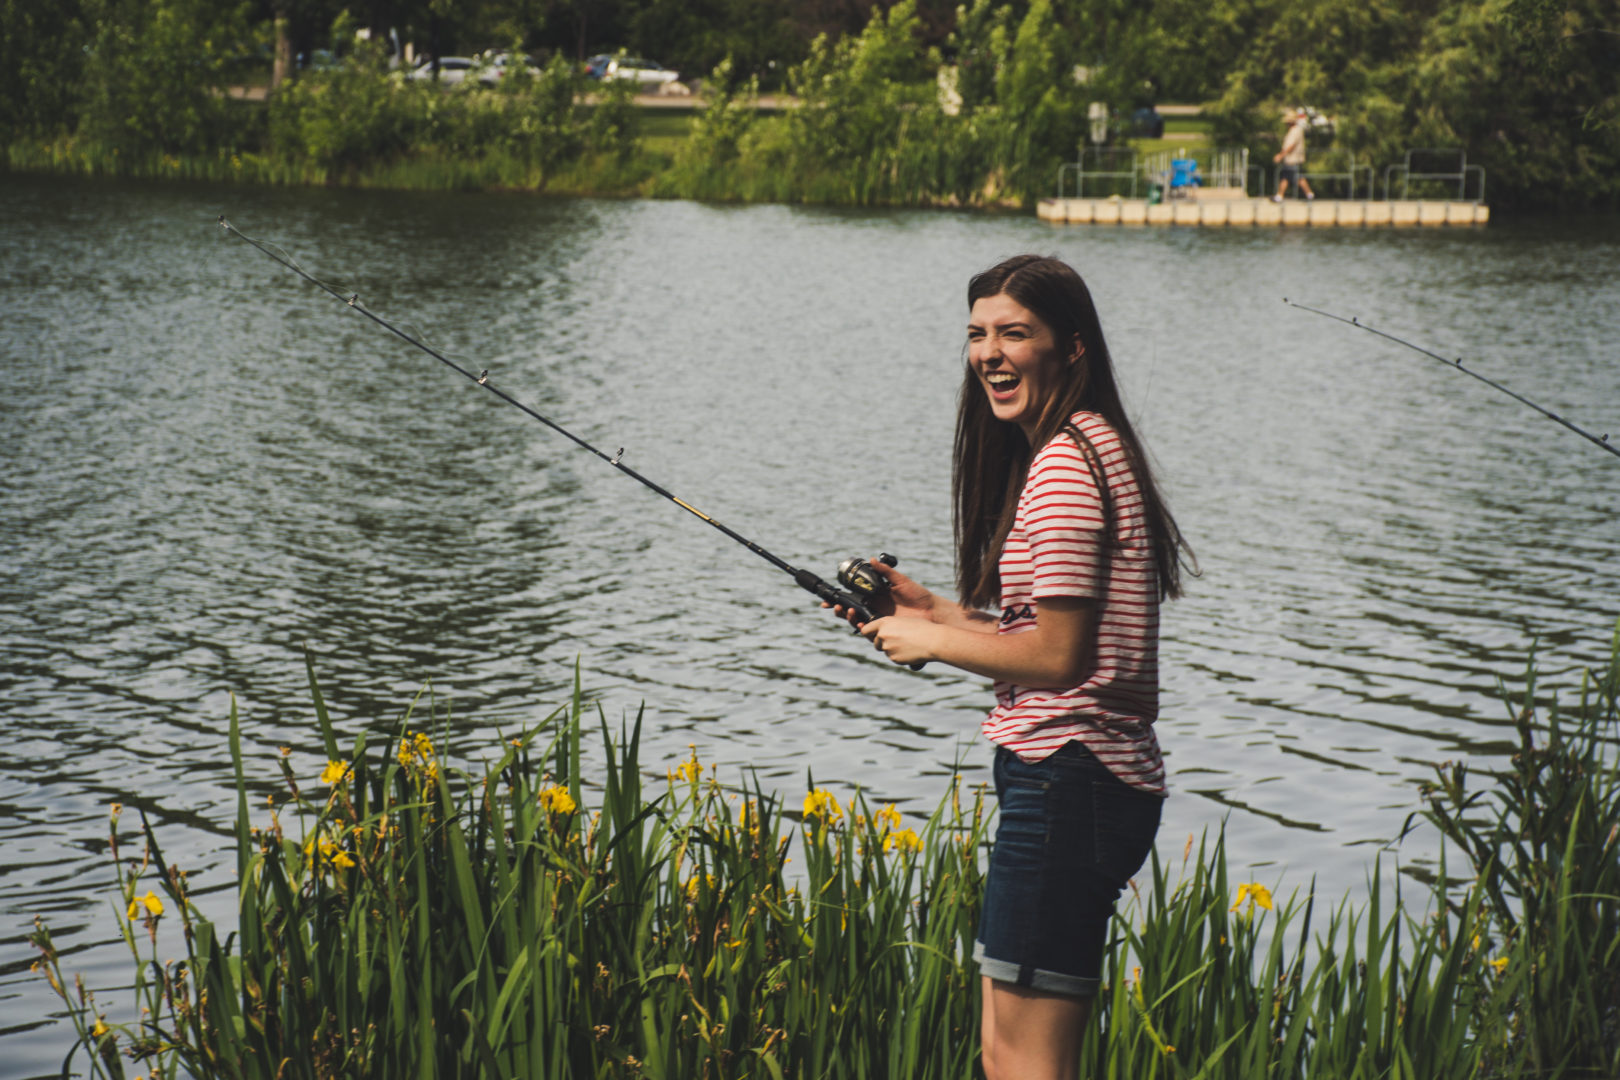 Girl standing in front of lake wish fishing rod in the water